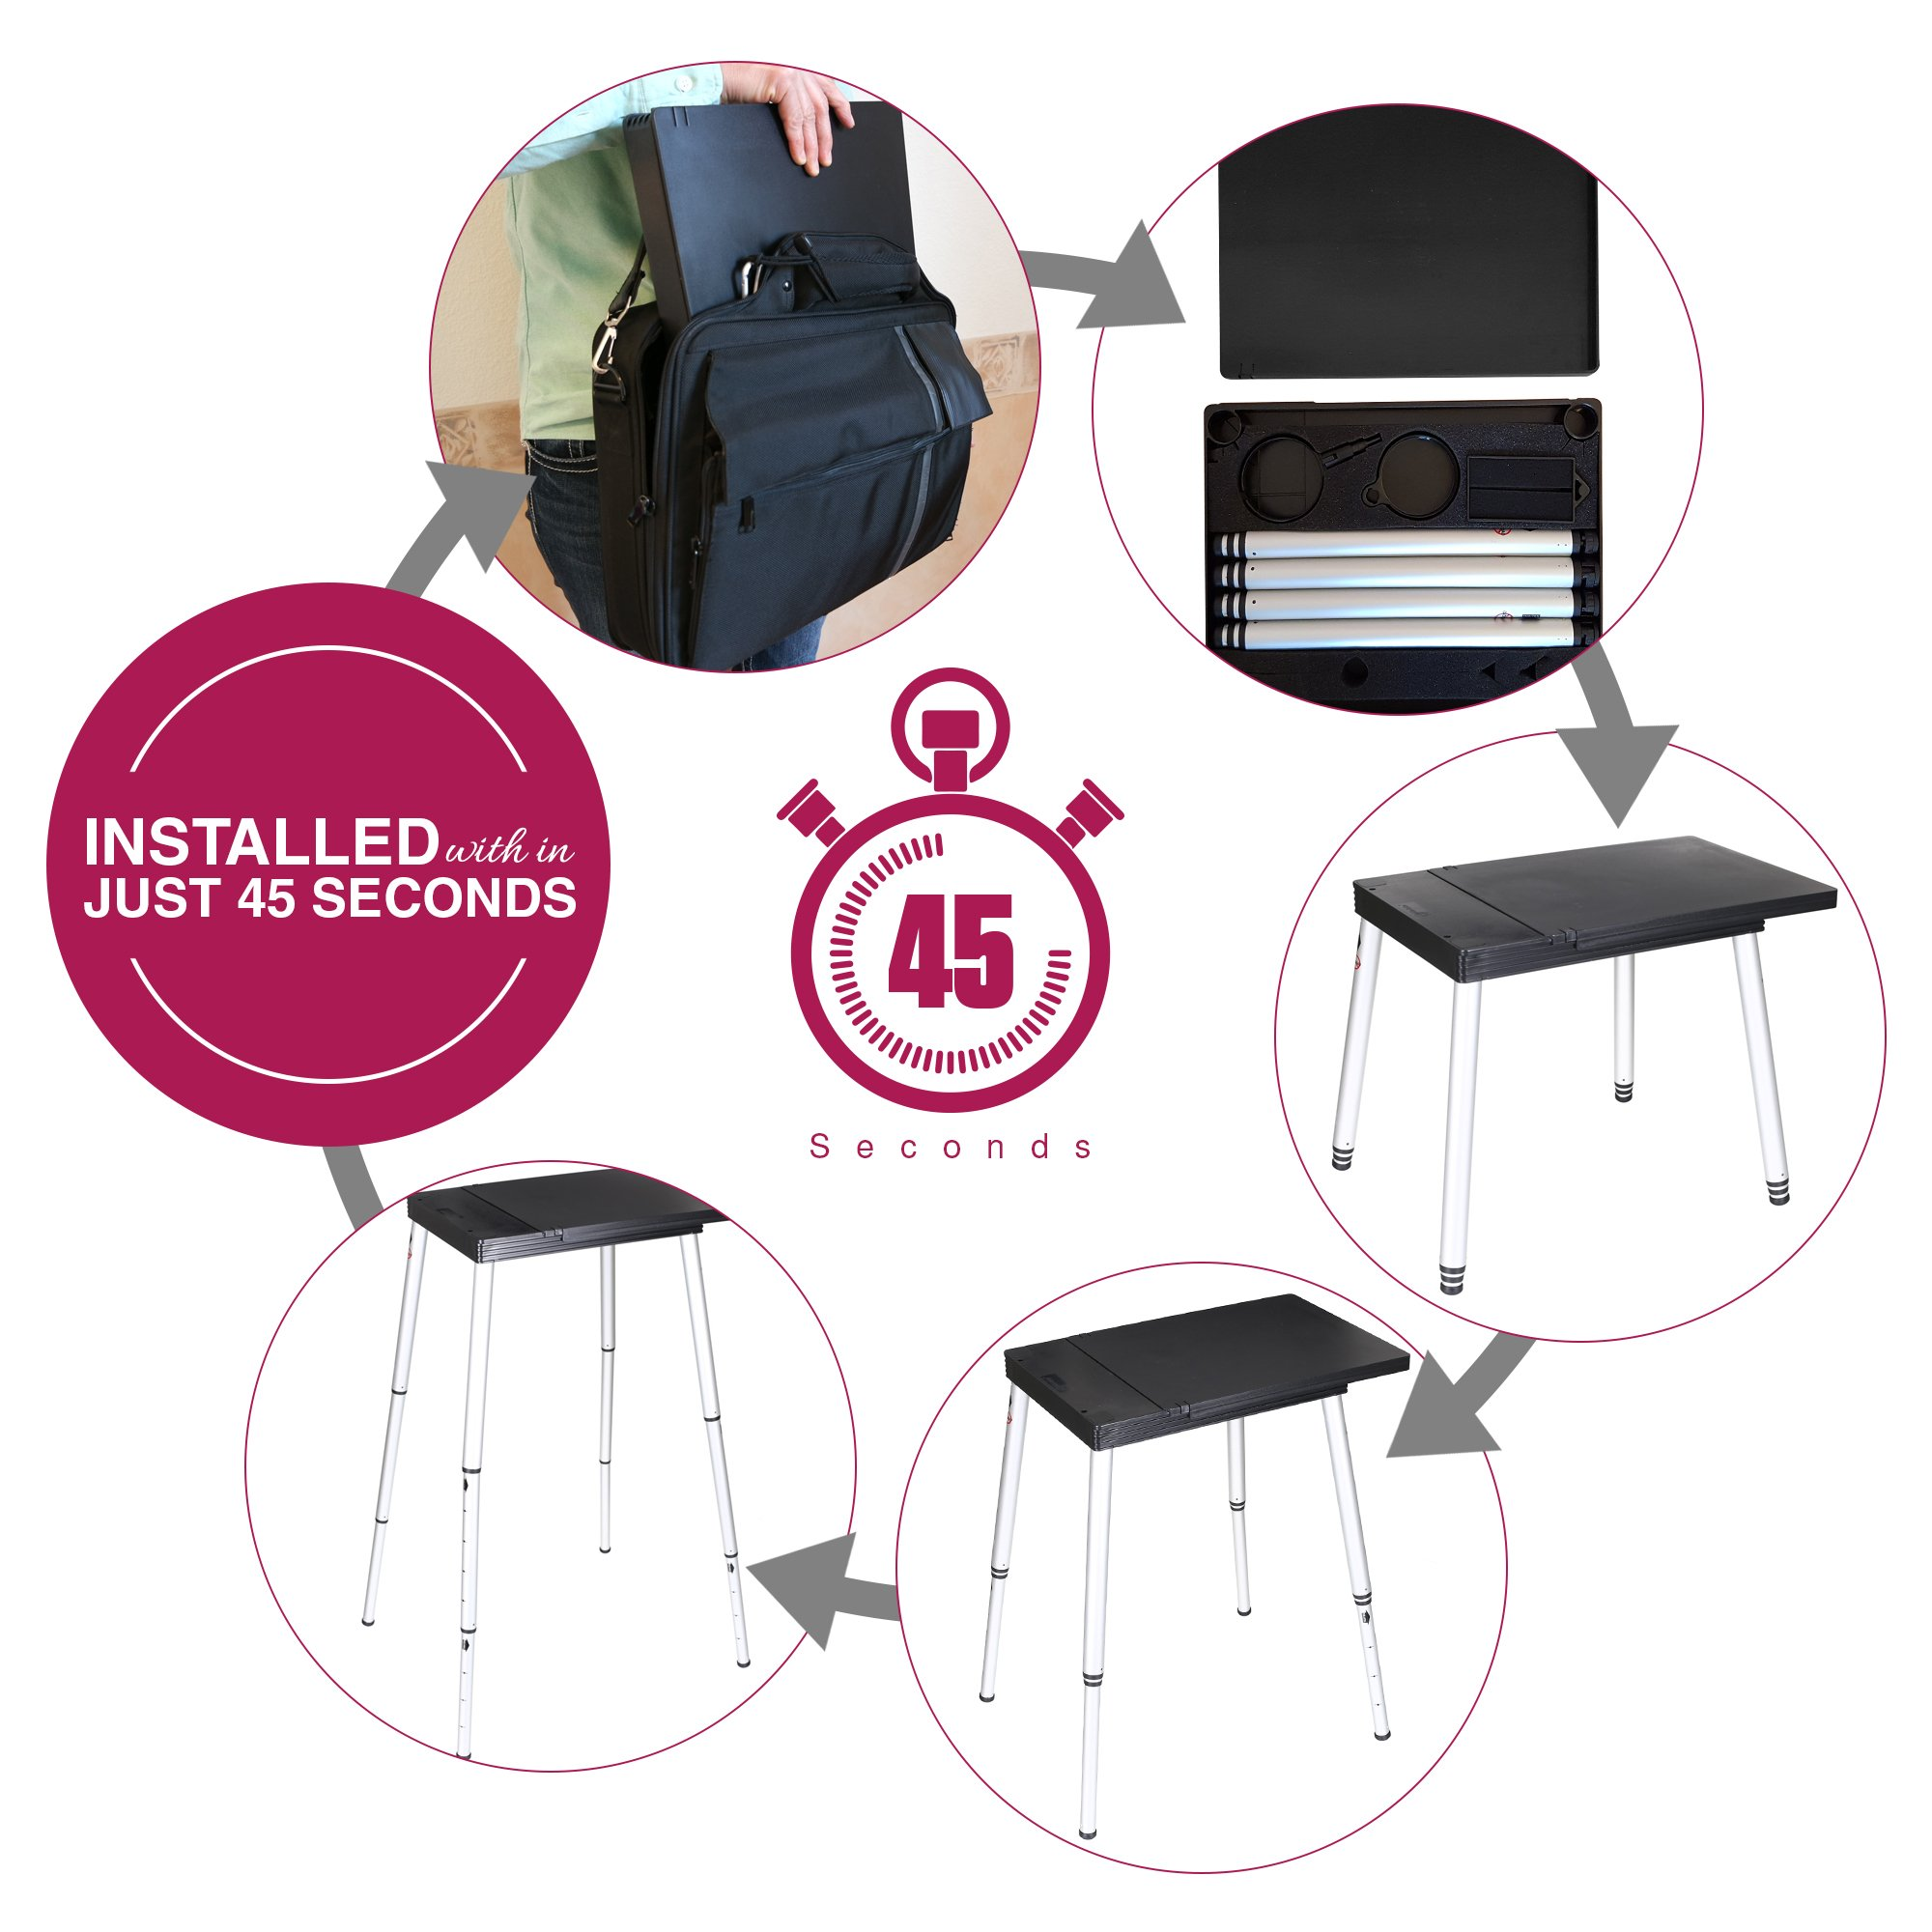 Tabletote Black Portable Compact Lightweight Adjustable Height Laptop Notebook Computer Stand …